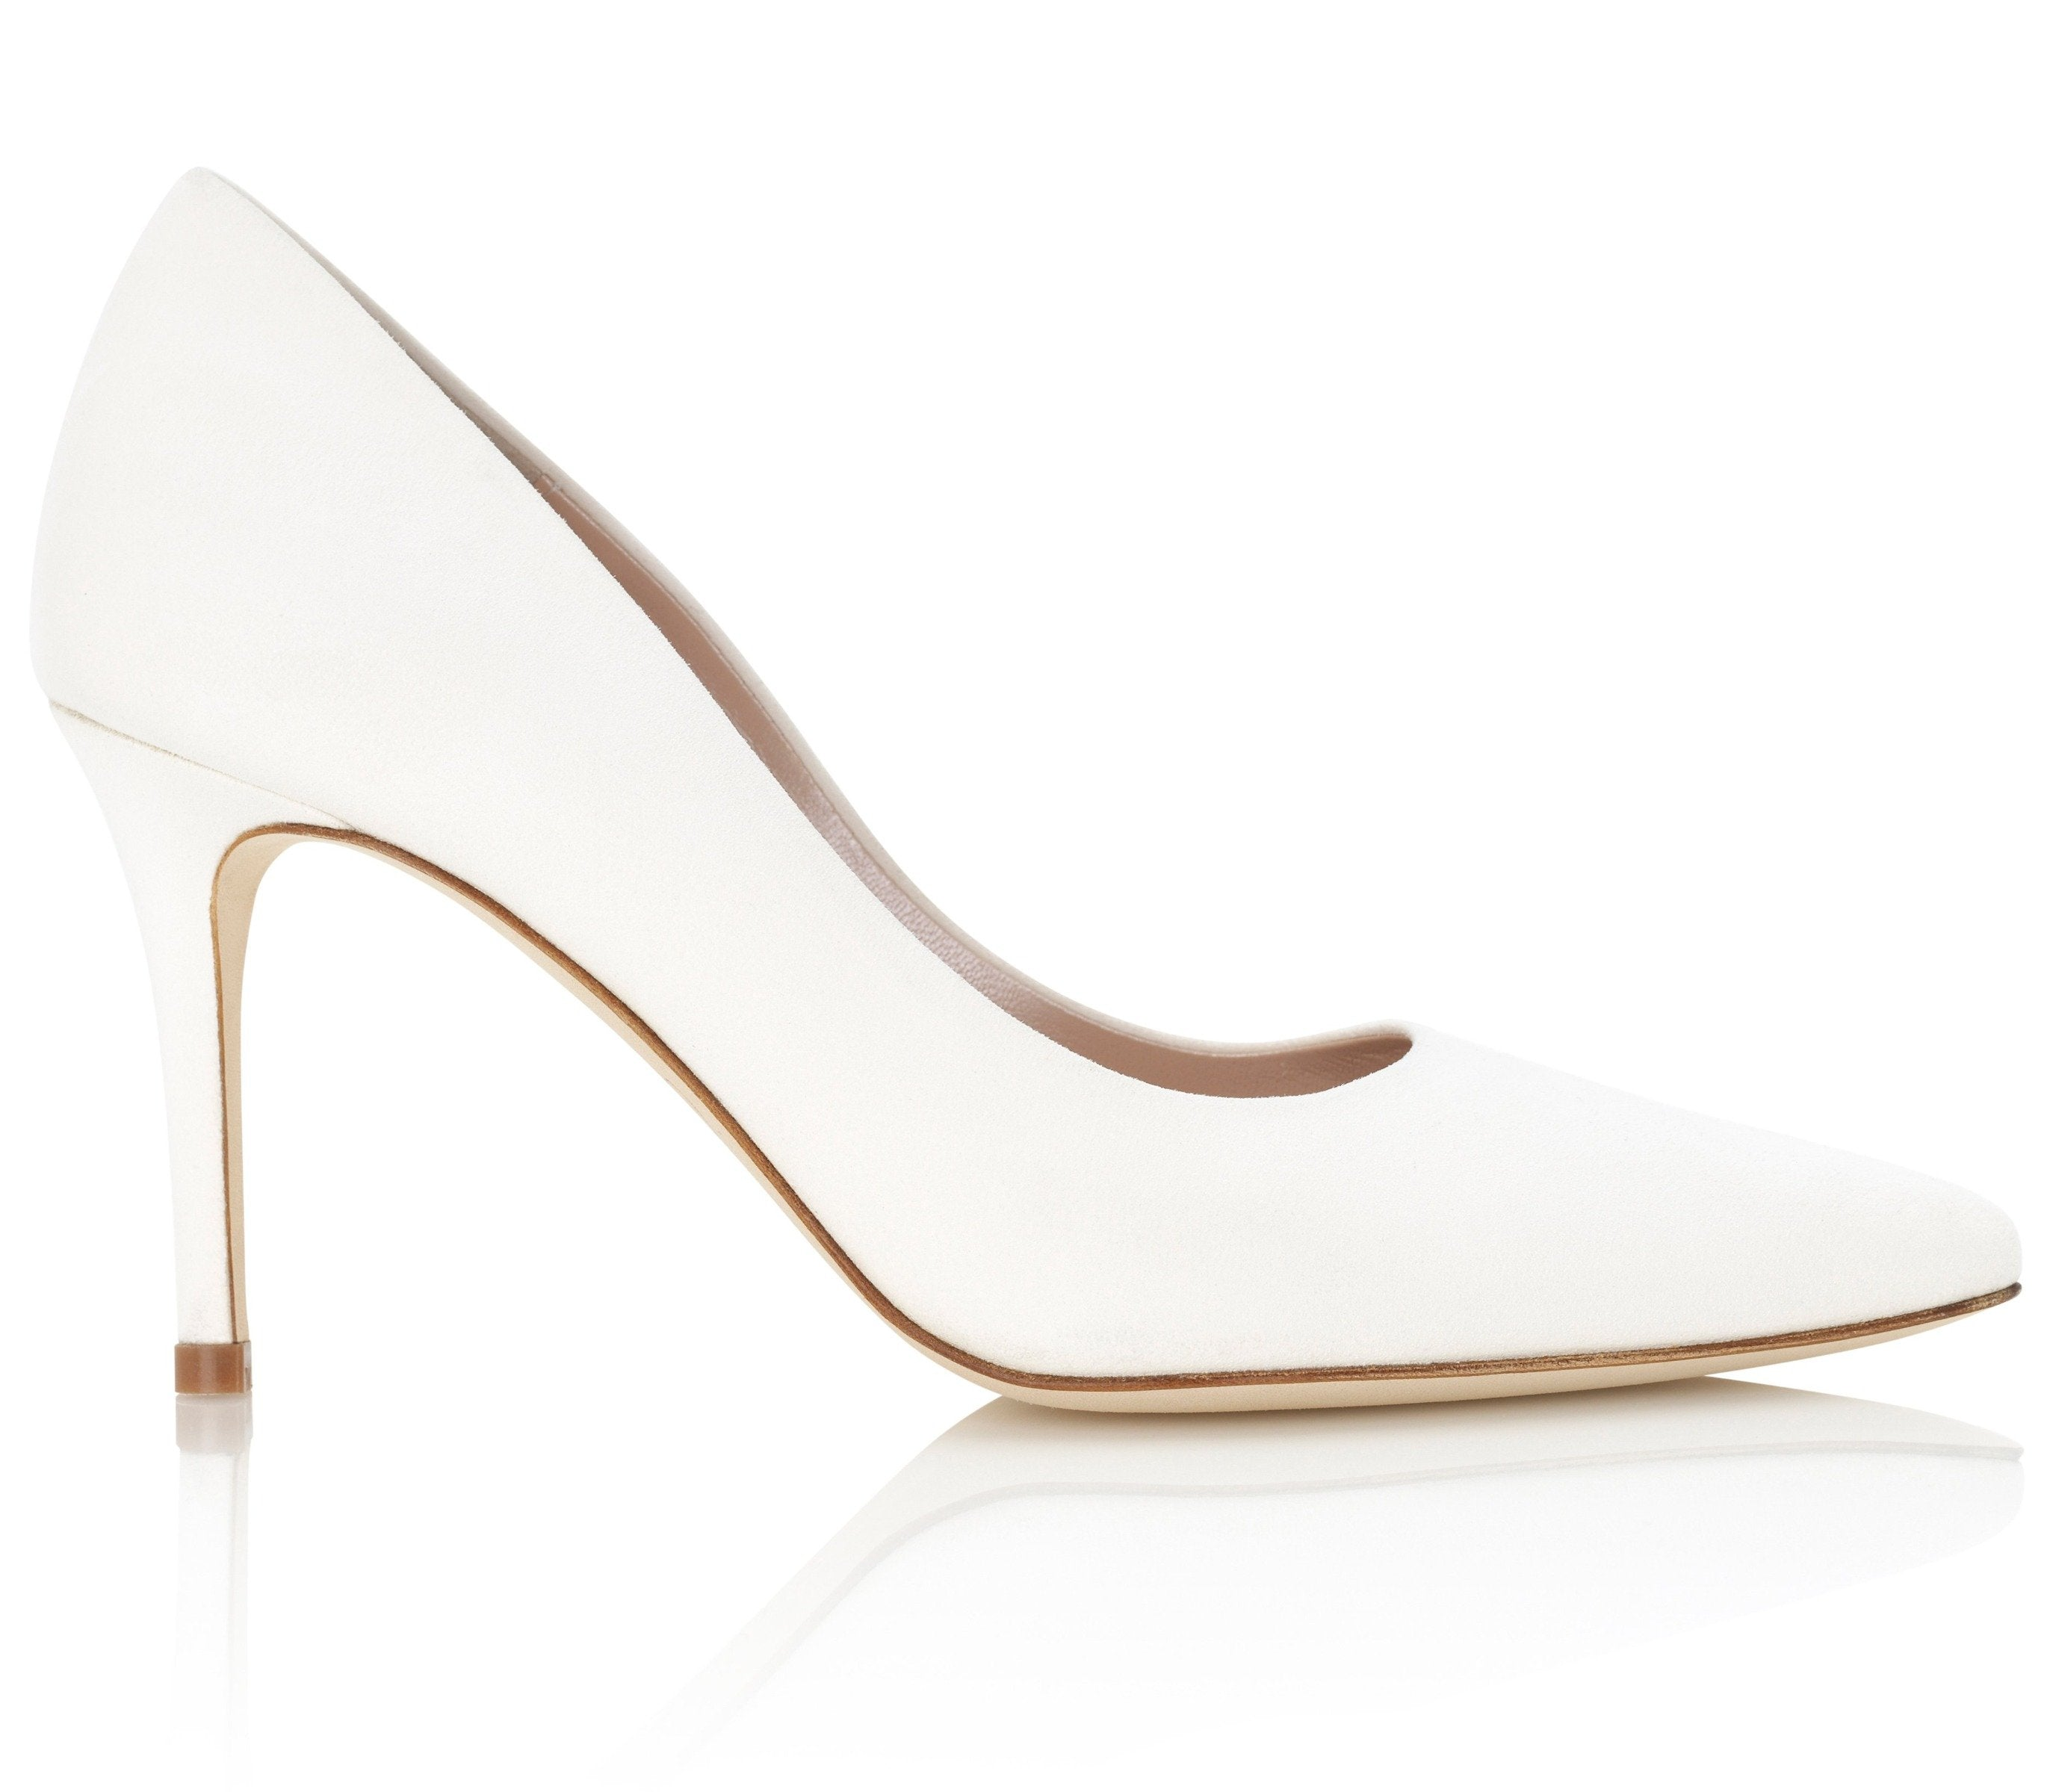 Ivory Suede Bridal Court Shoes By Emmy London